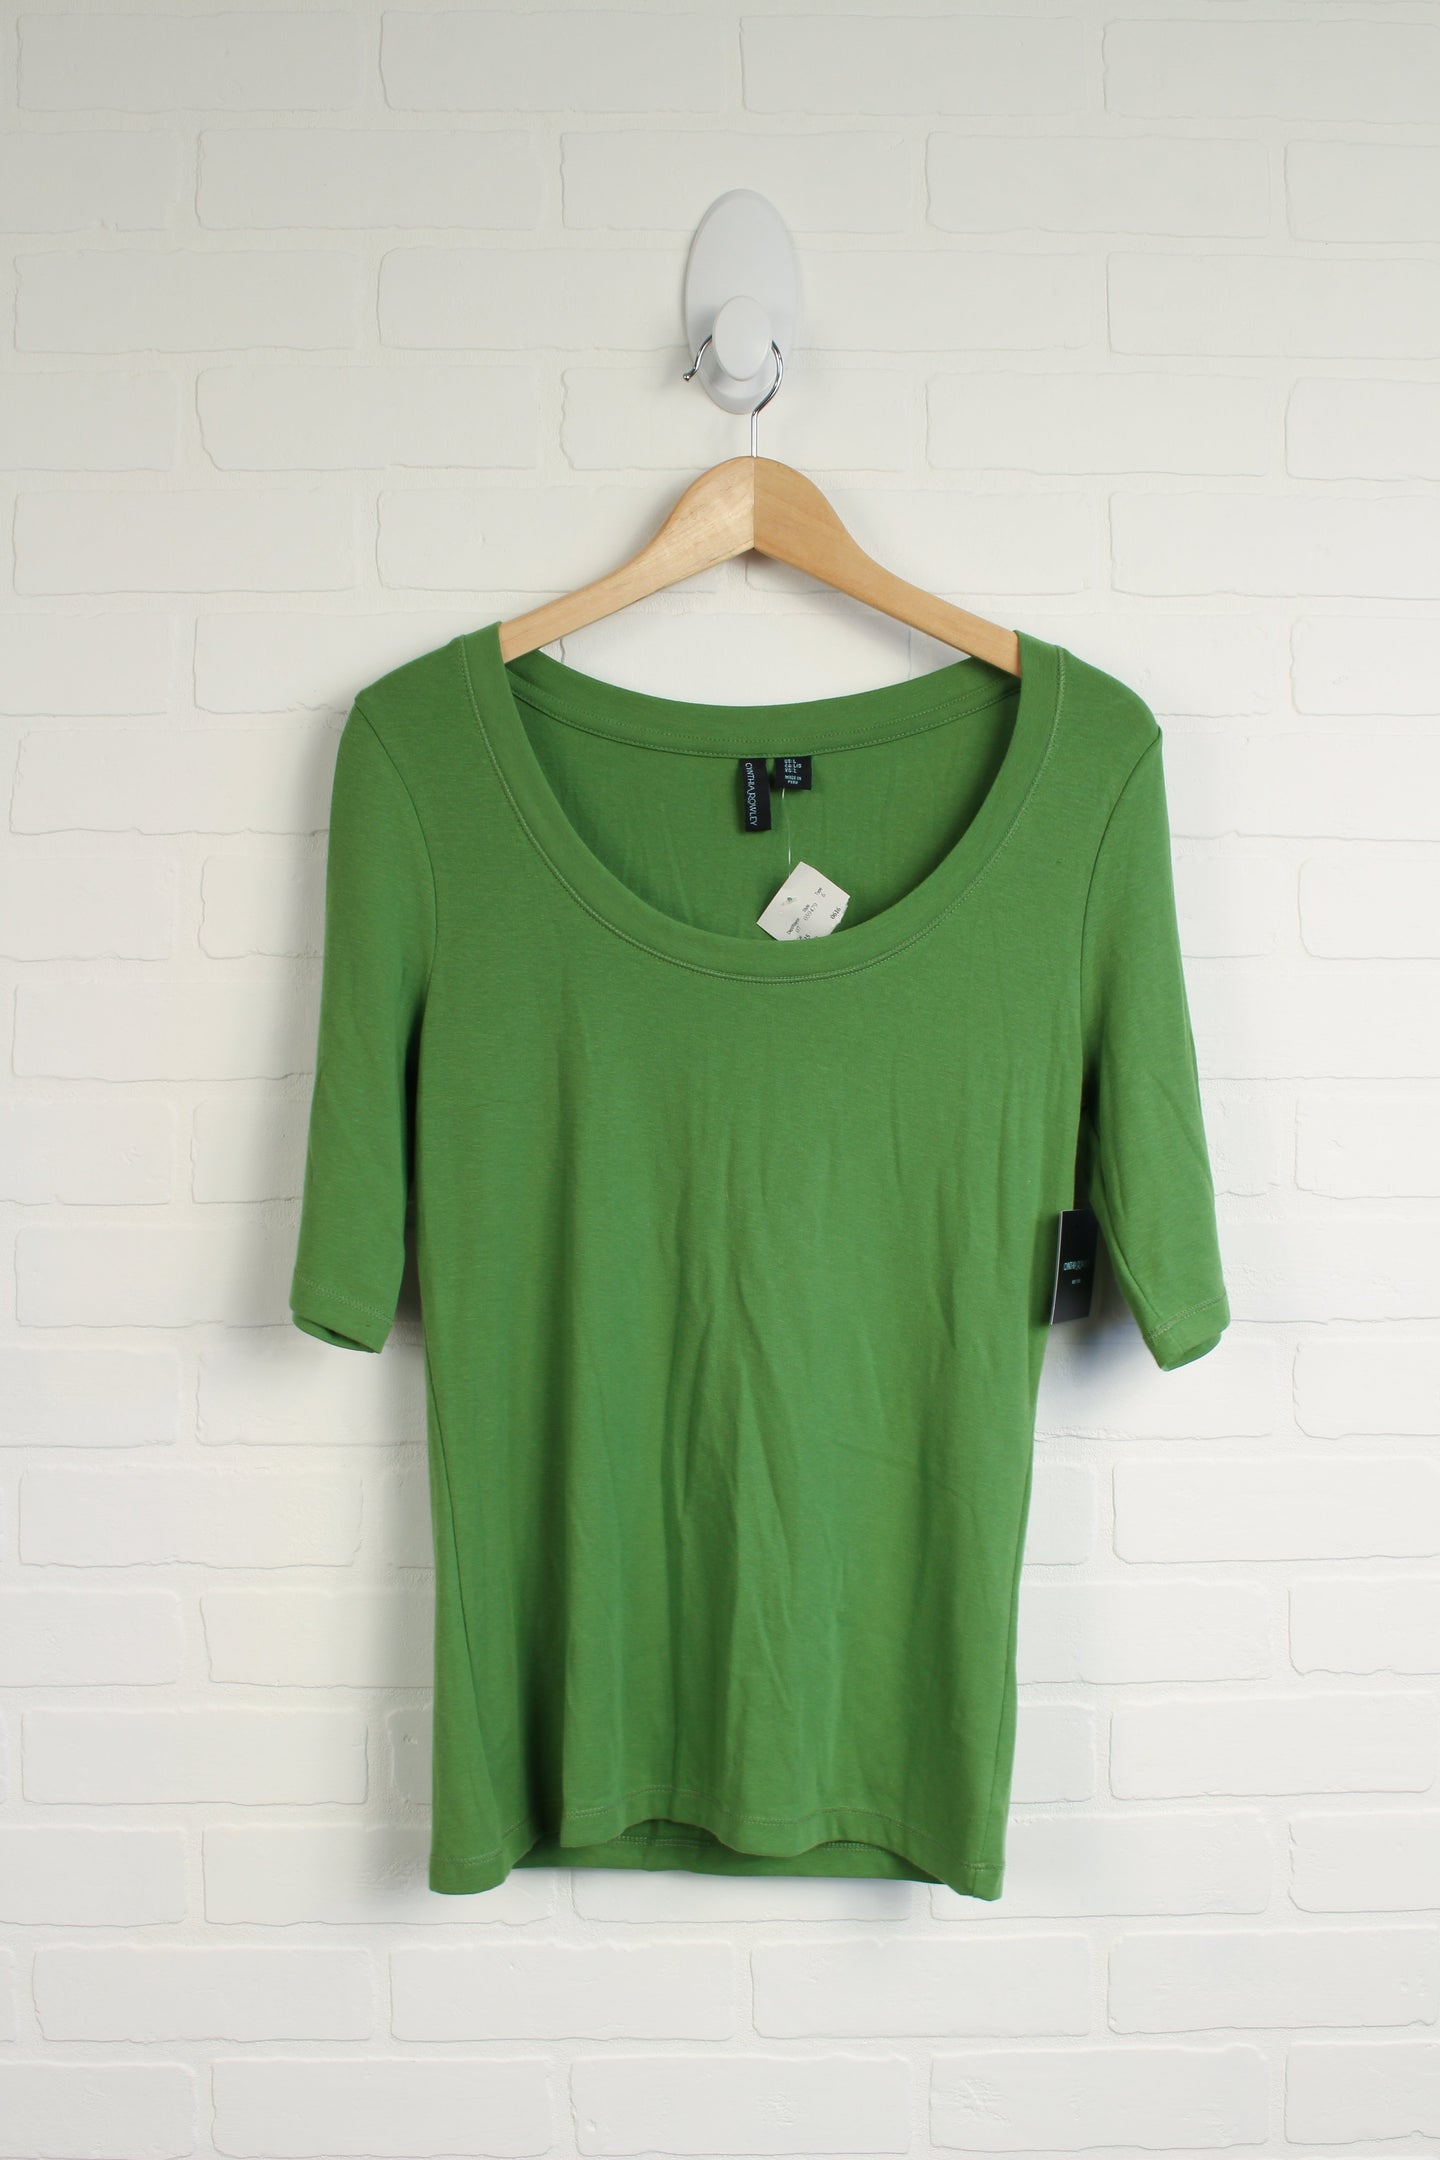 NWT Green Top (Women's Size L)